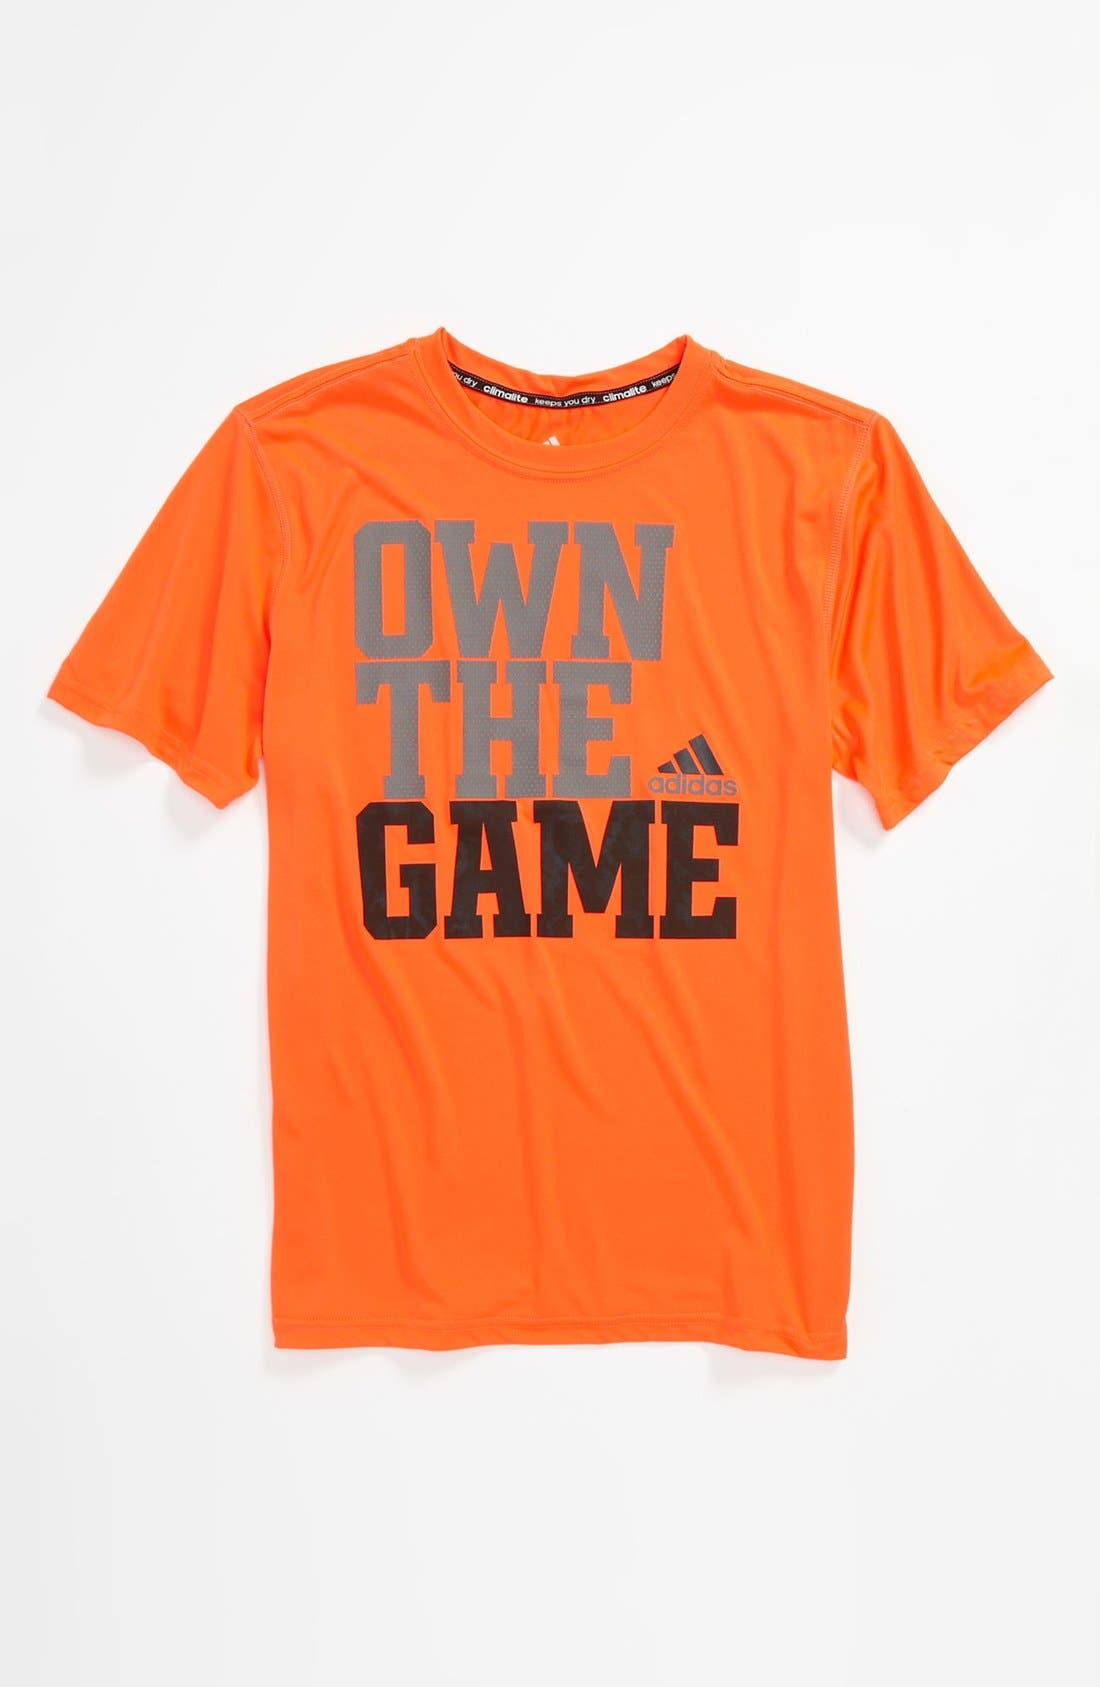 Alternate Image 1 Selected - adidas 'Own The Game' T-Shirt (Big Boys)